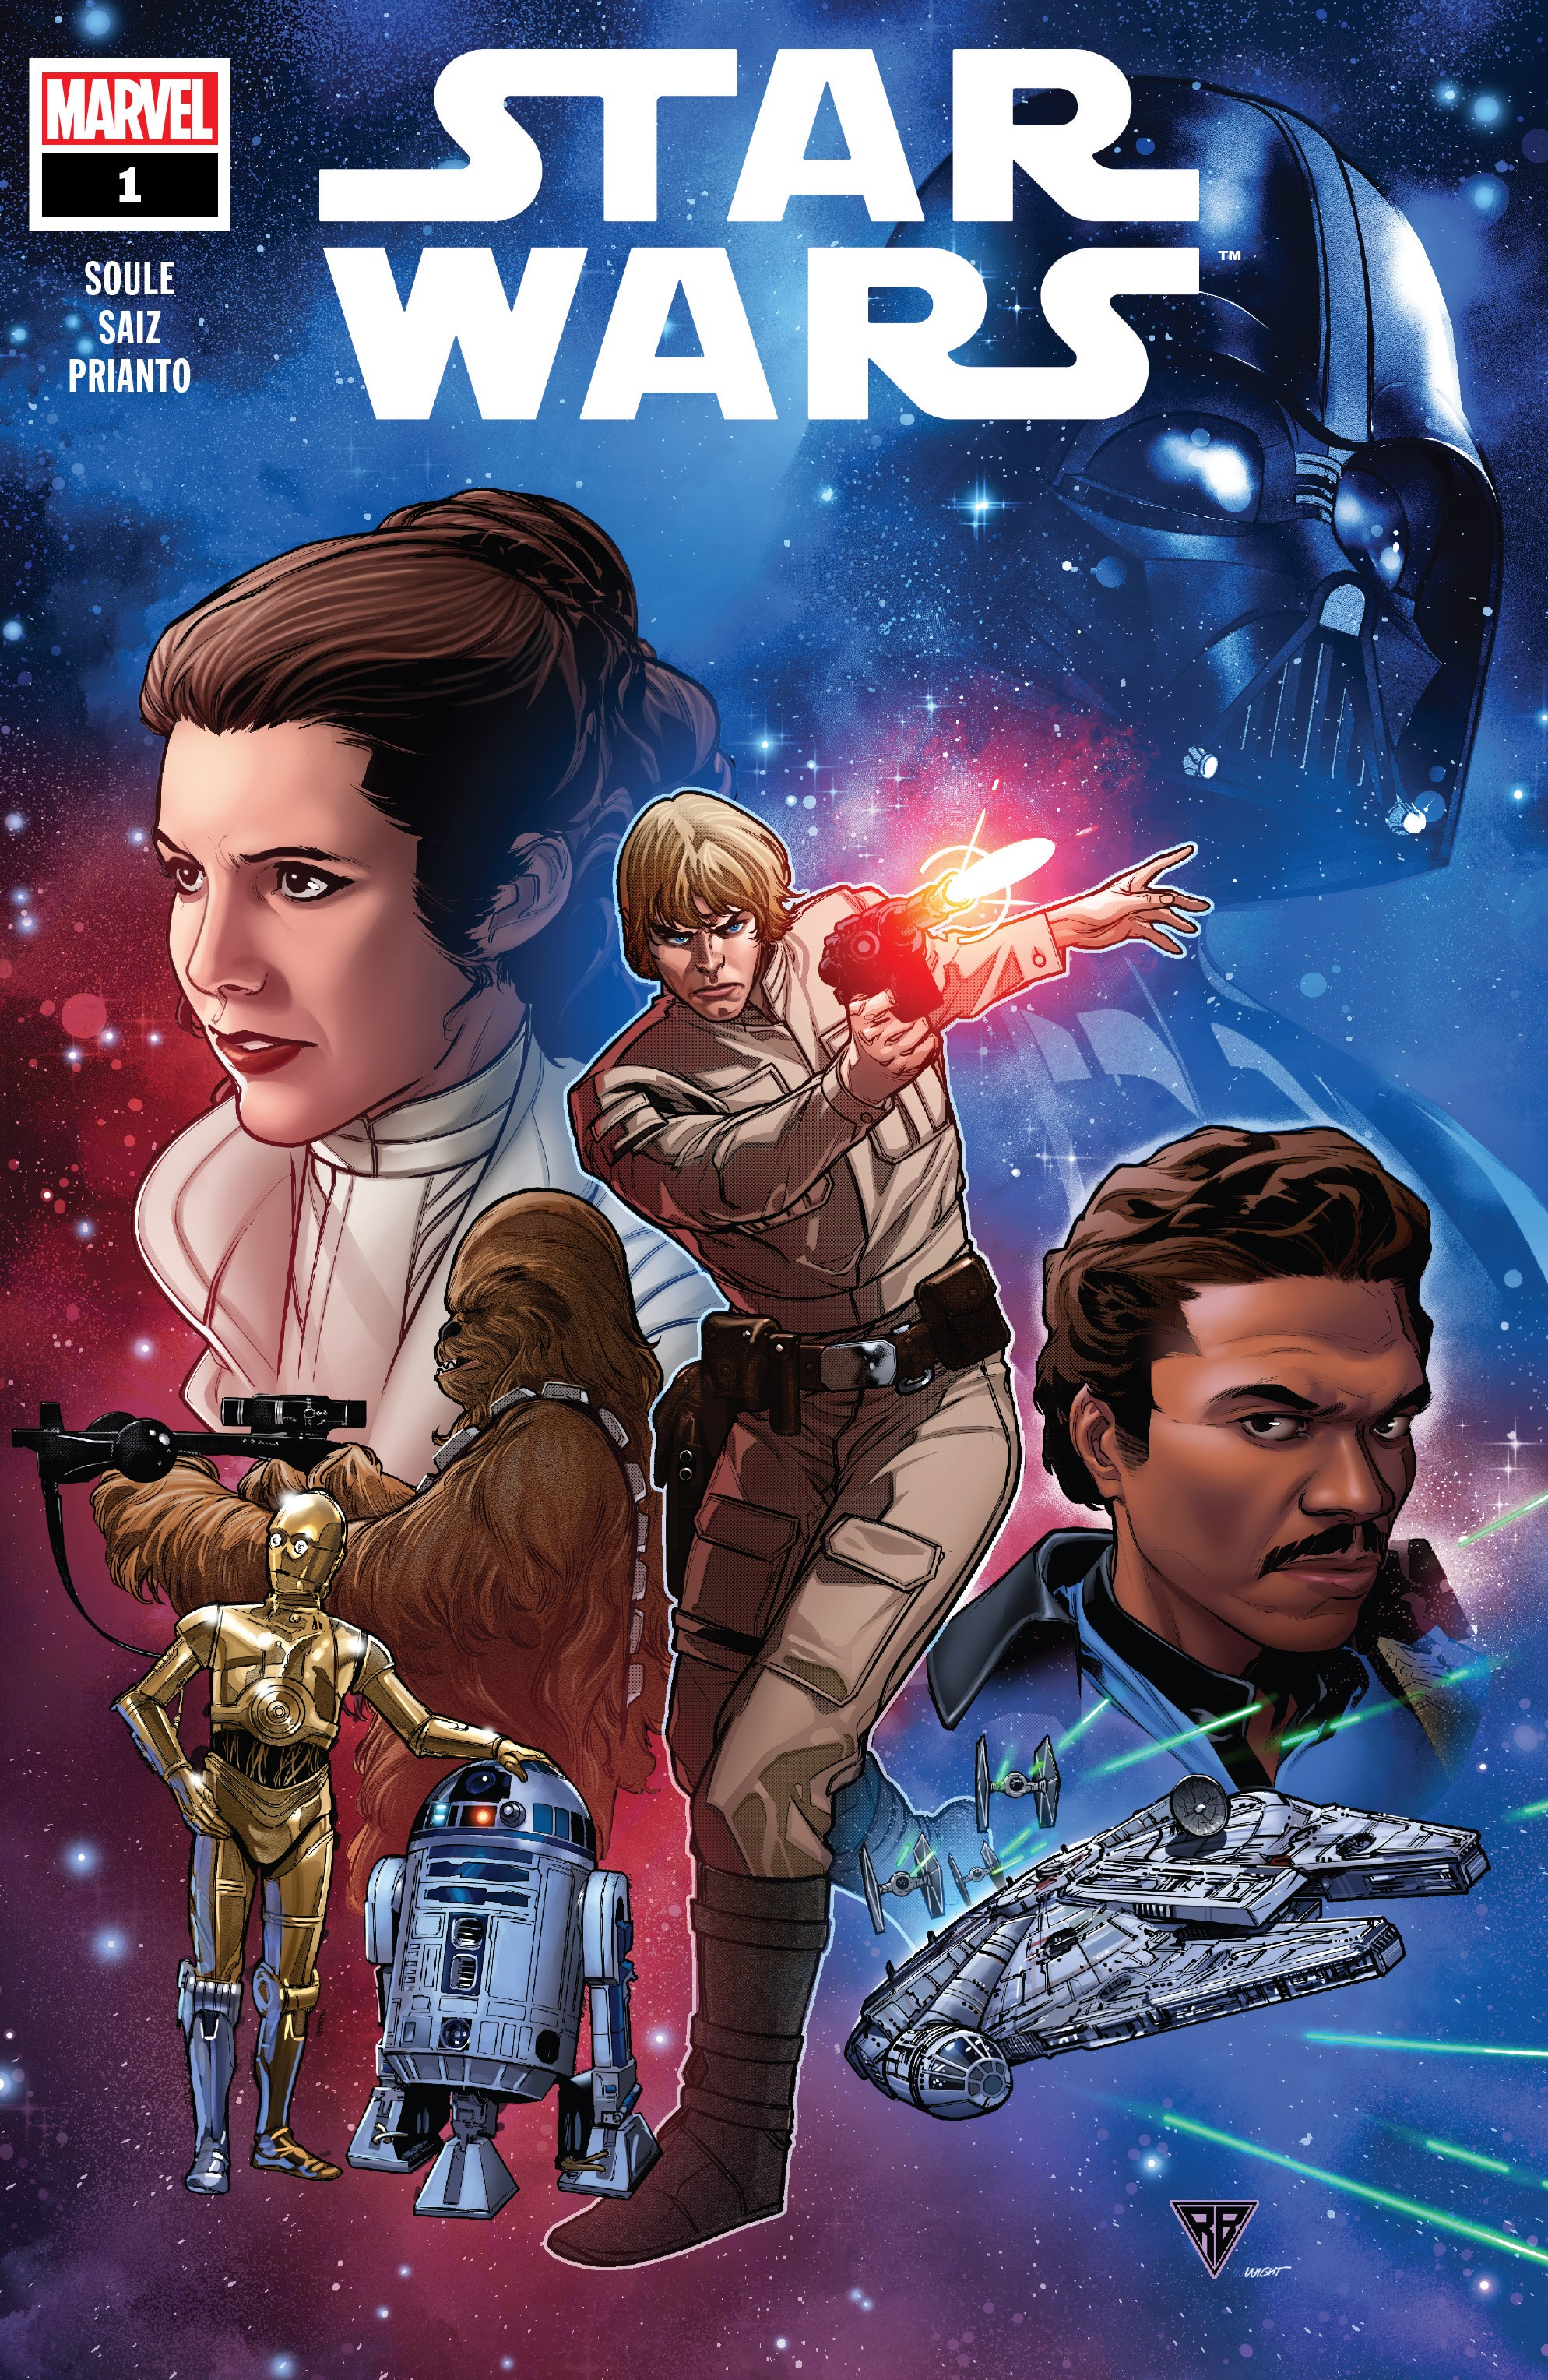 Star Wars (2020) issue 1 - Page 1